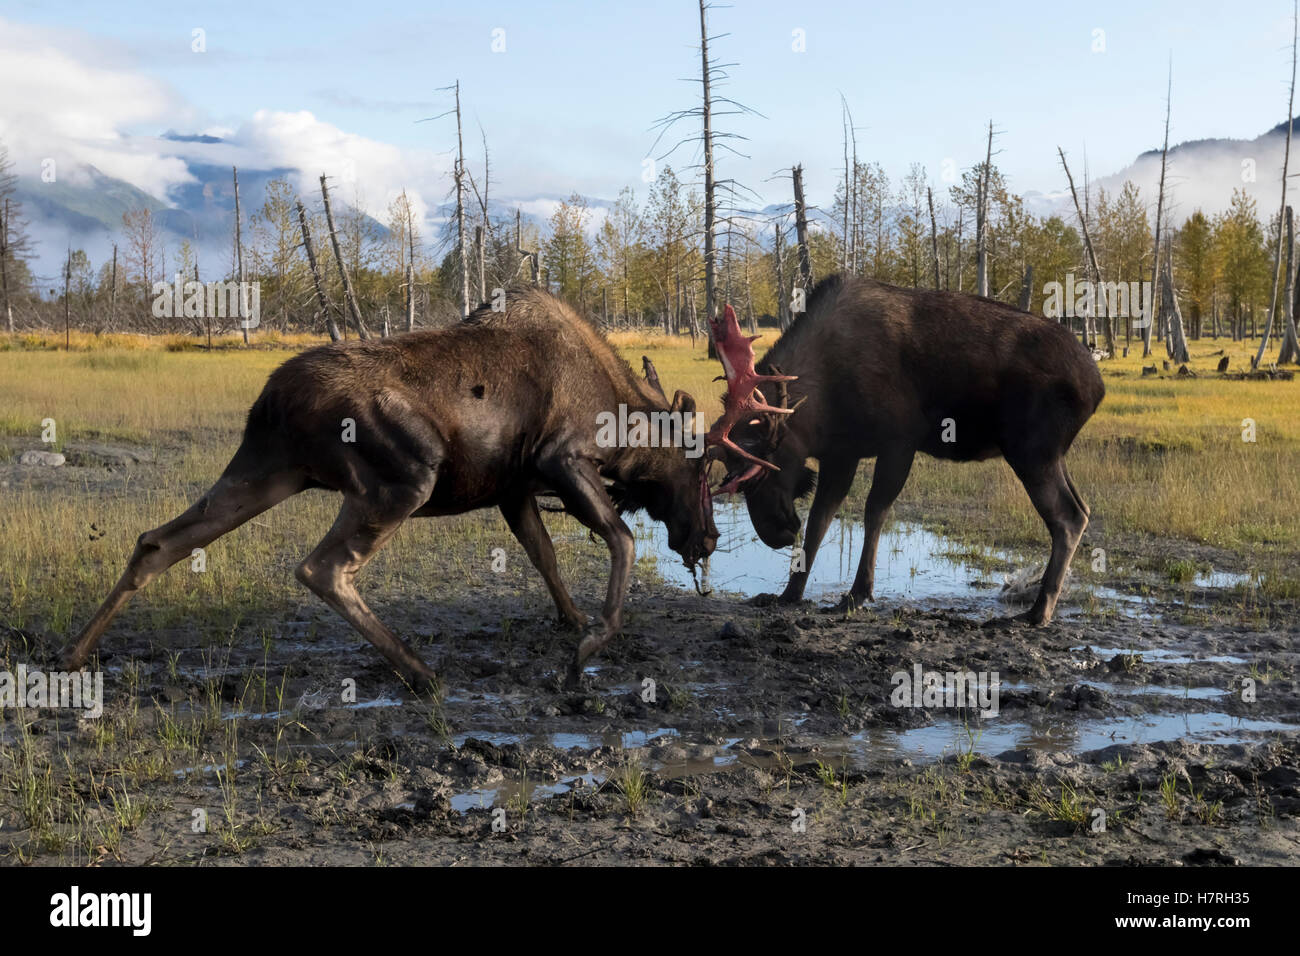 Bull moose (alces alces) just coming out of shedding its velvet and antlers look a little red, captive at Alaska - Stock Image